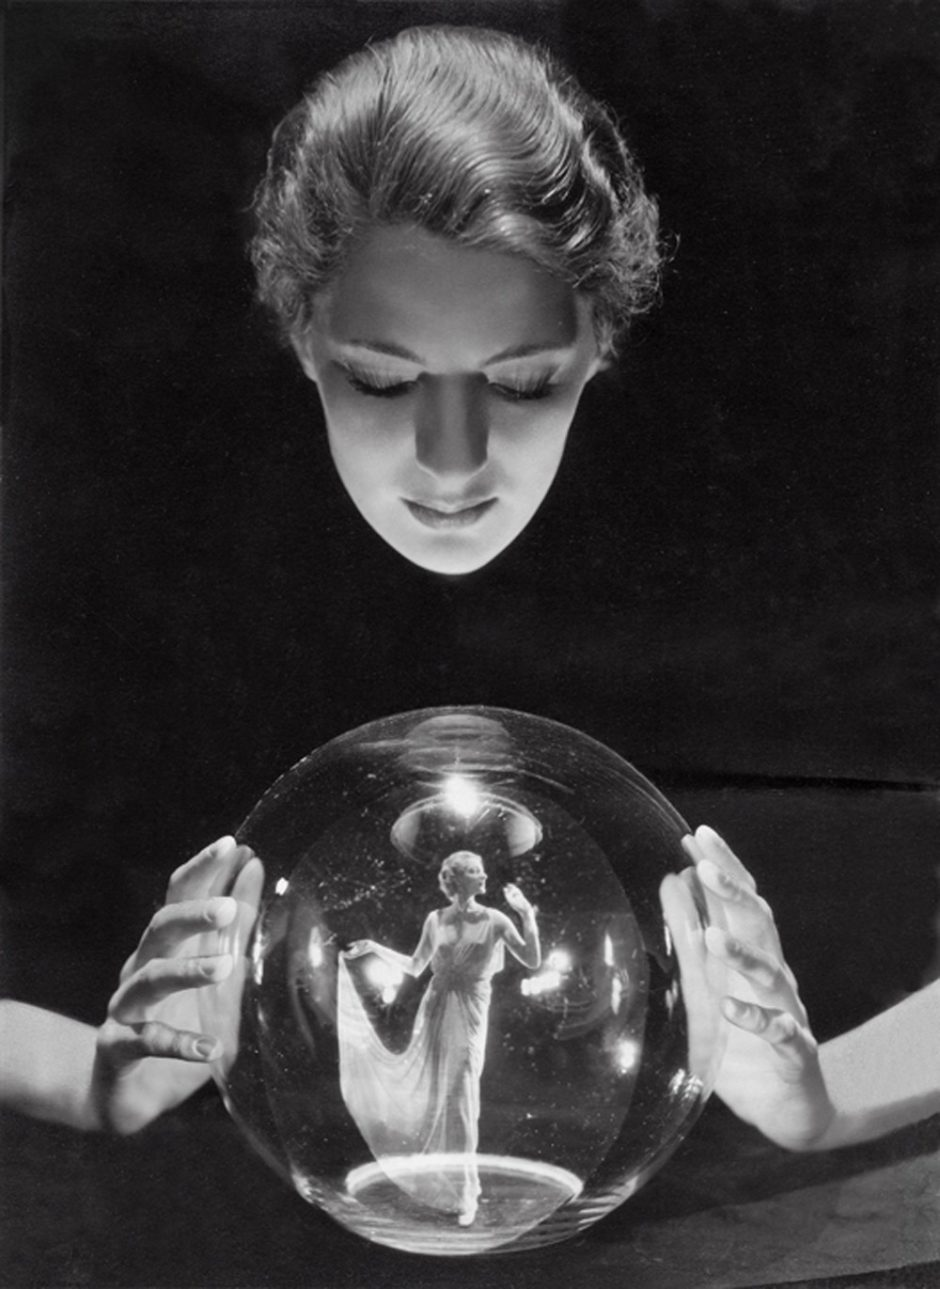 © George Hoyningen-Huene - Lee Miller avec une boule de crystal, Paris, France, 1932